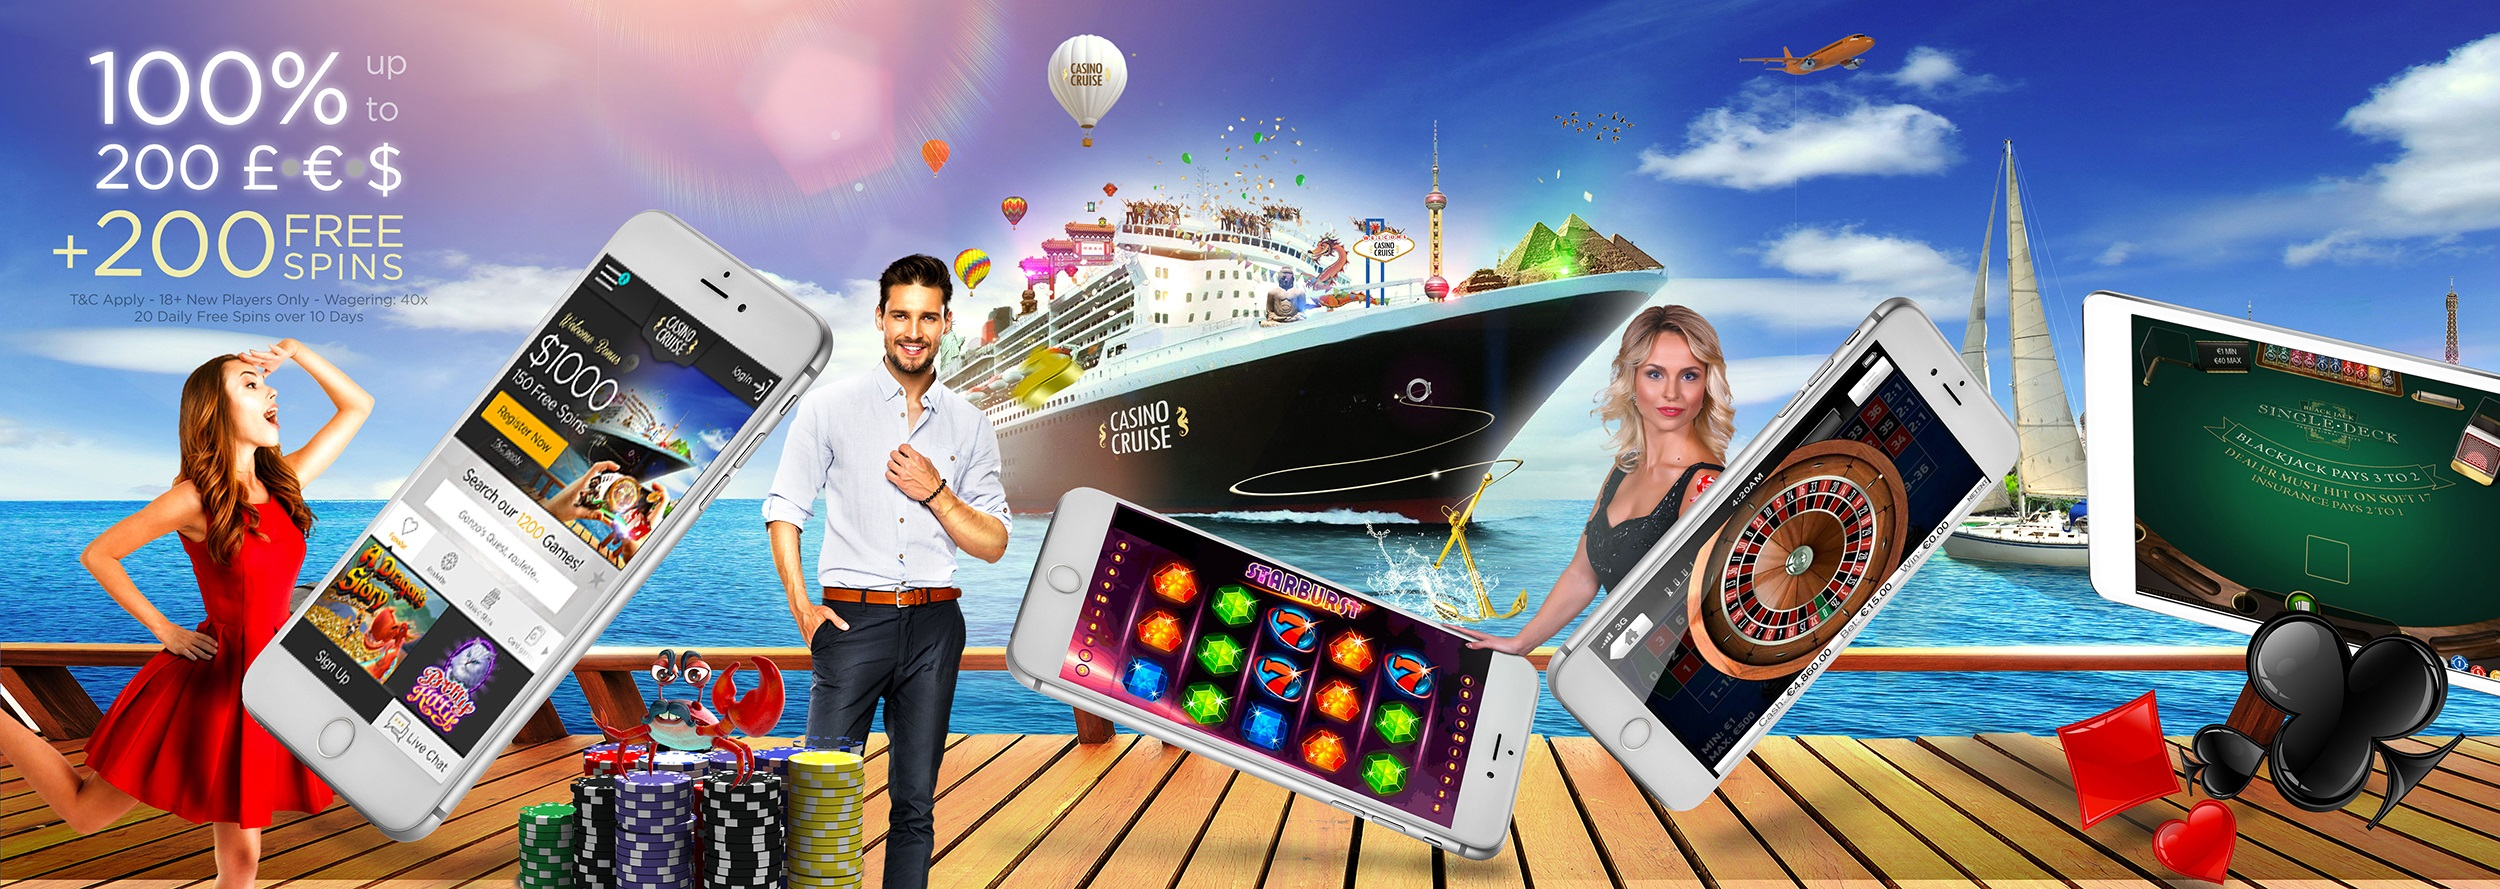 CasinoCruise App